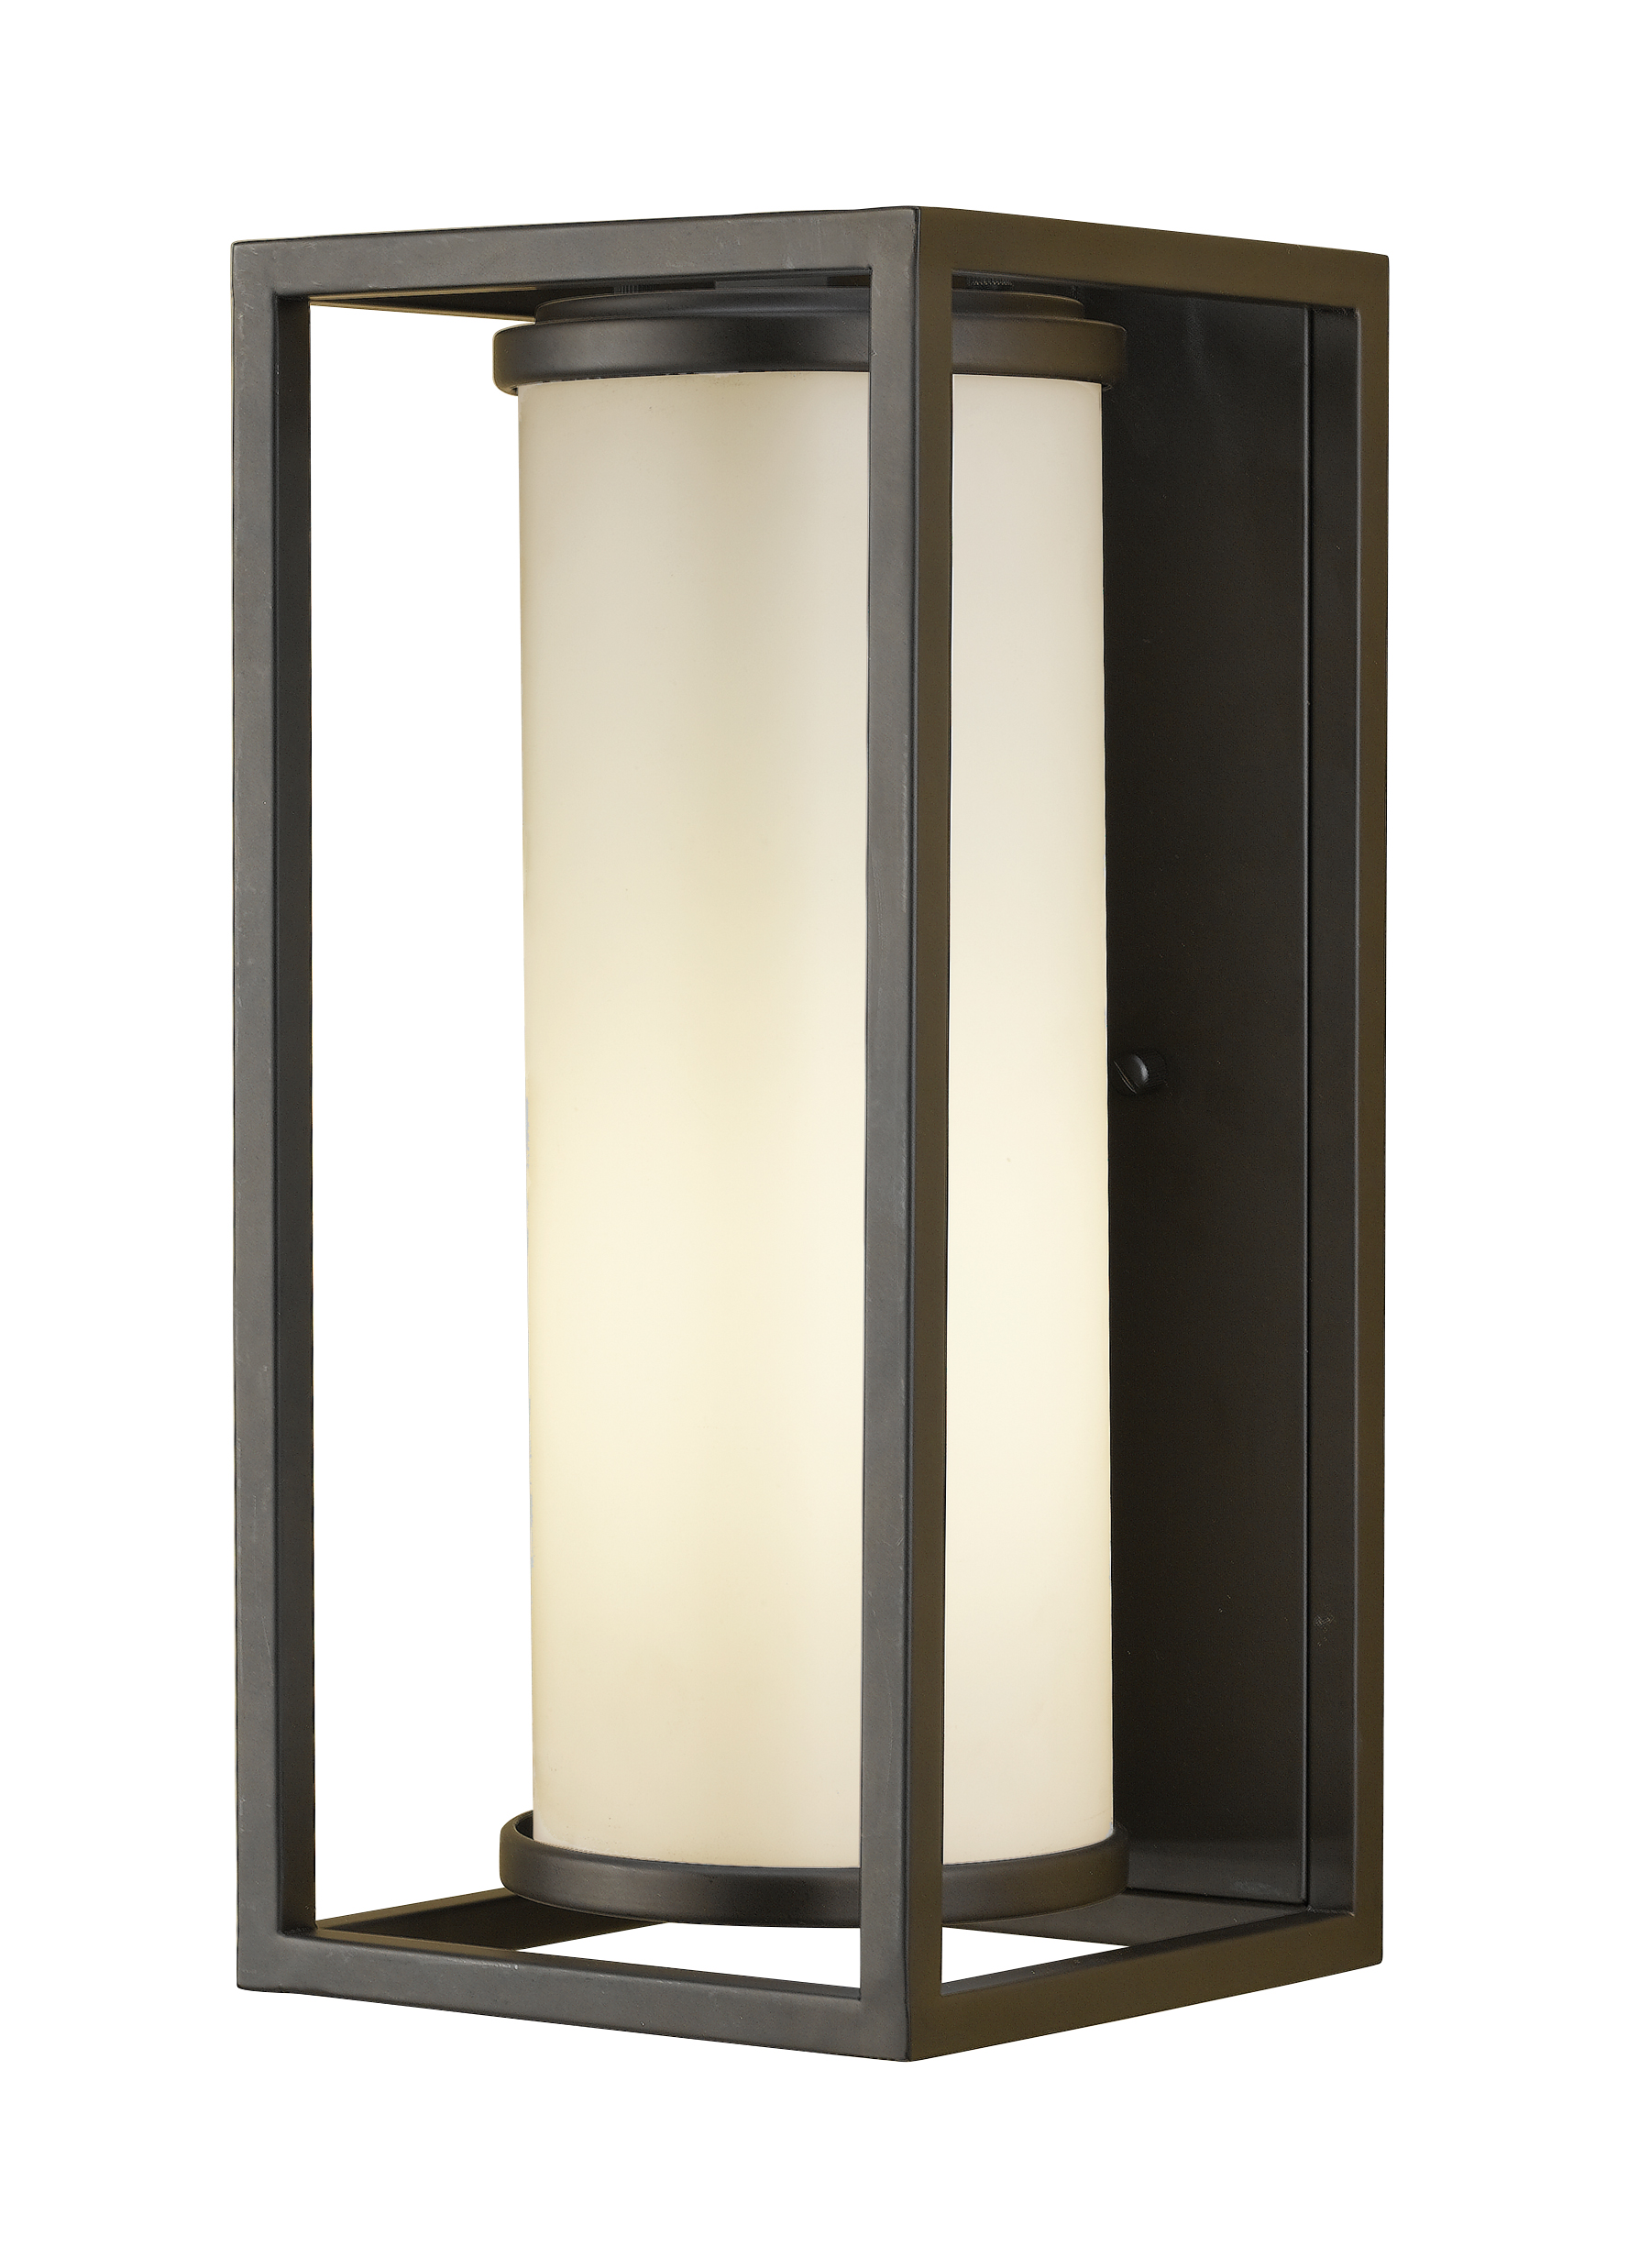 Bathroom Vanity Lights Stopped Working olpl7001orb,1 - light wall lantern,oil rubbed bronze